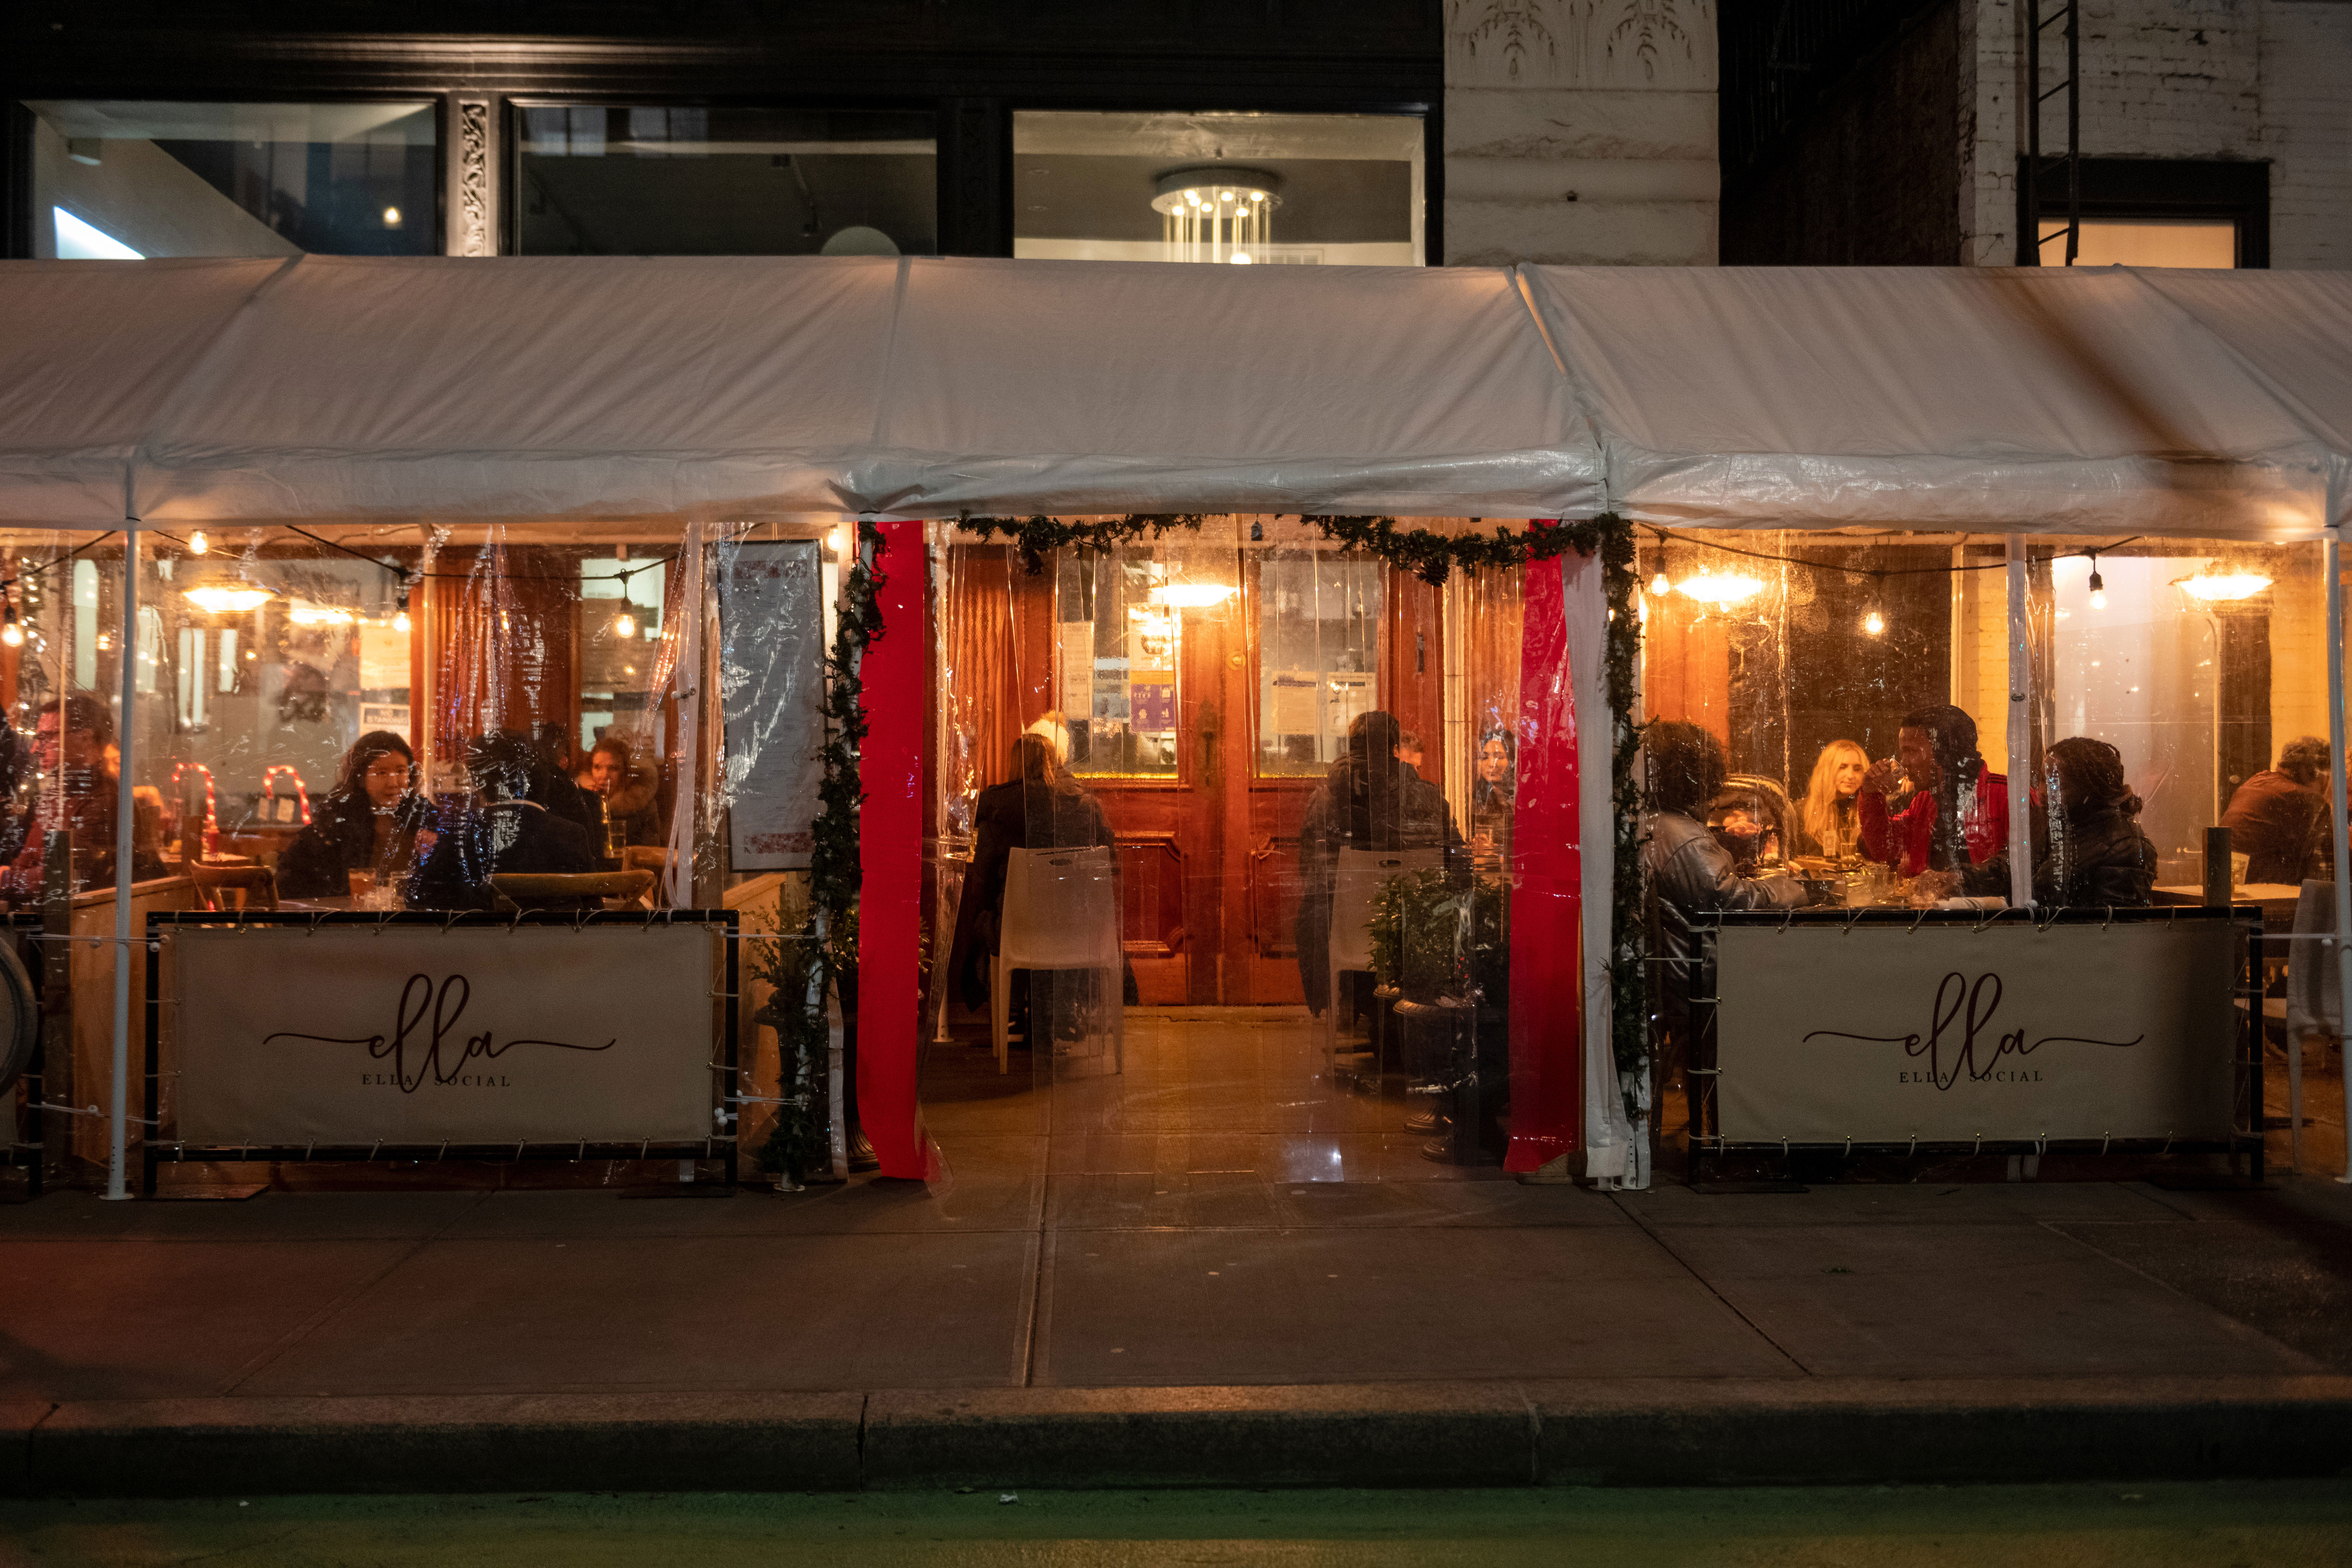 People dine outdoors under a plastic tent at a restaurant on the Upper West Side in New York on December 30, 2020.